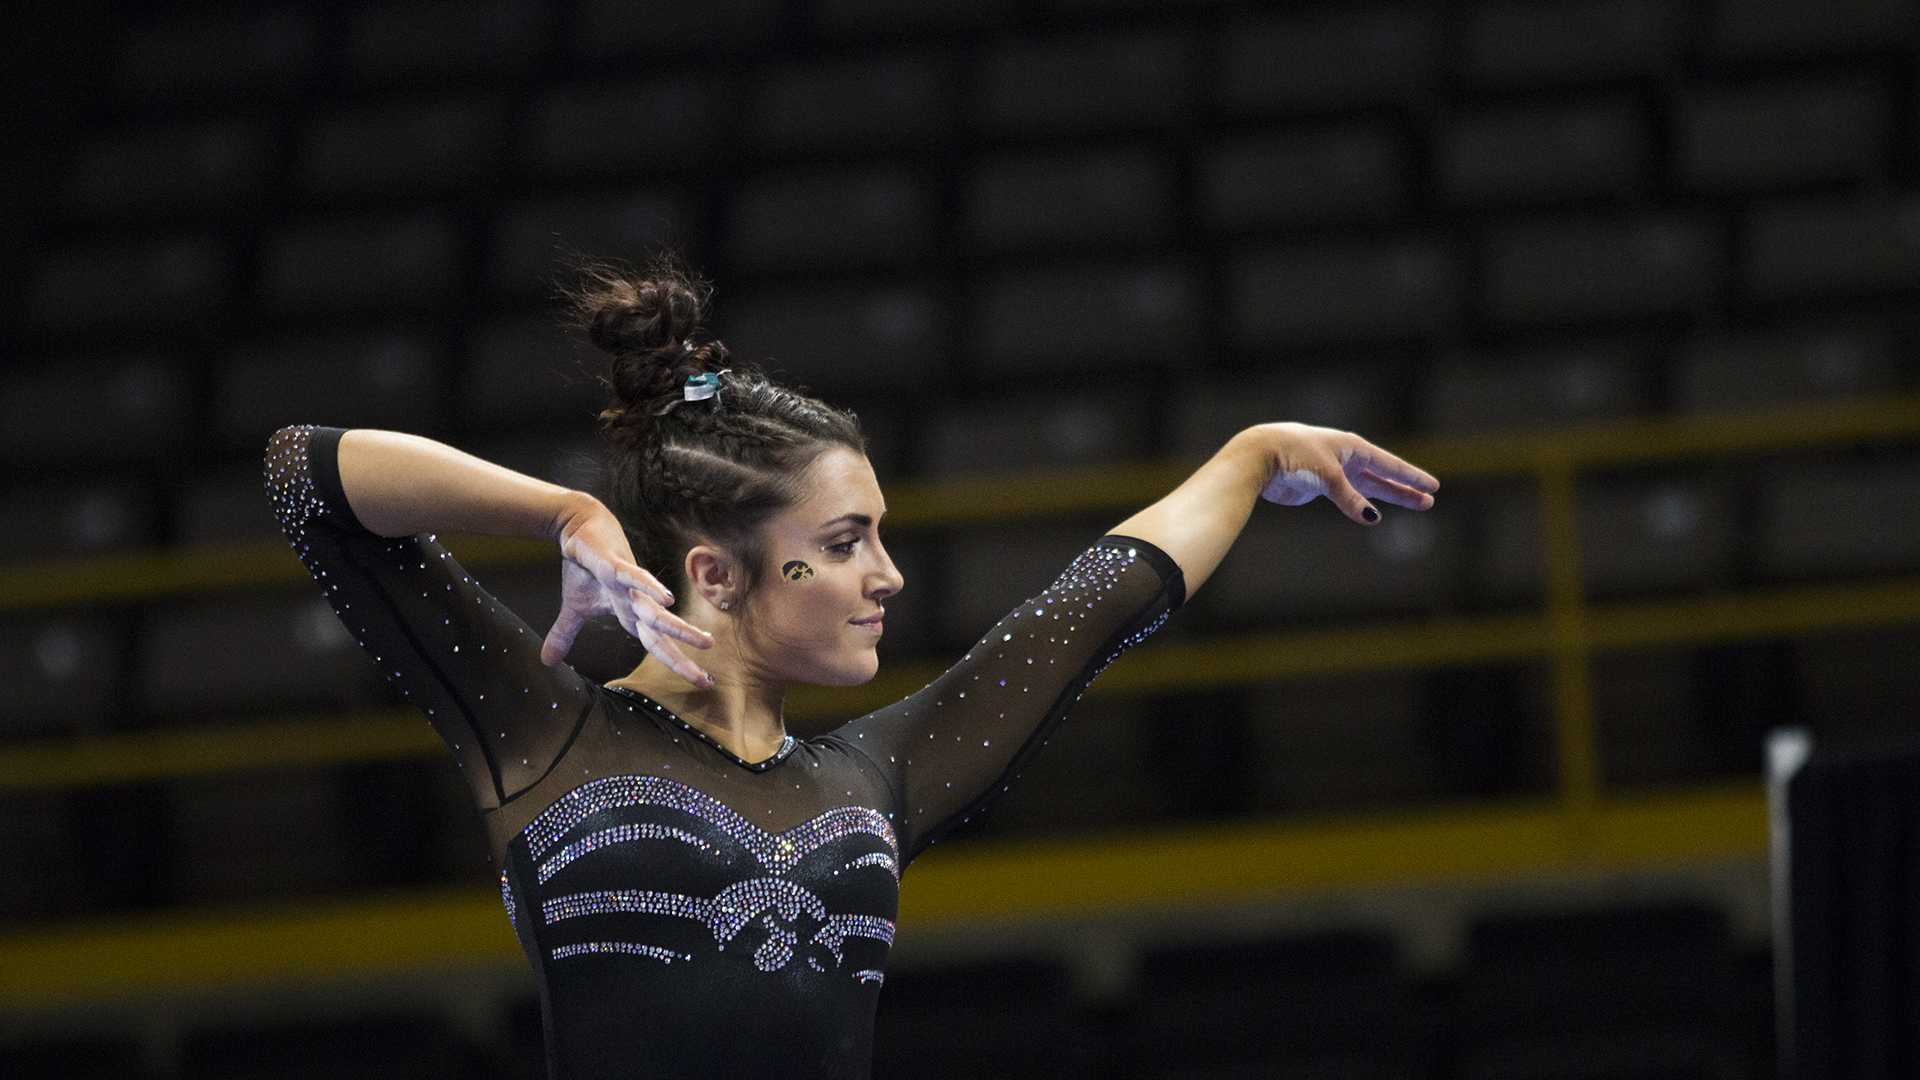 Iowa gymnastics has shown up like a dark horse